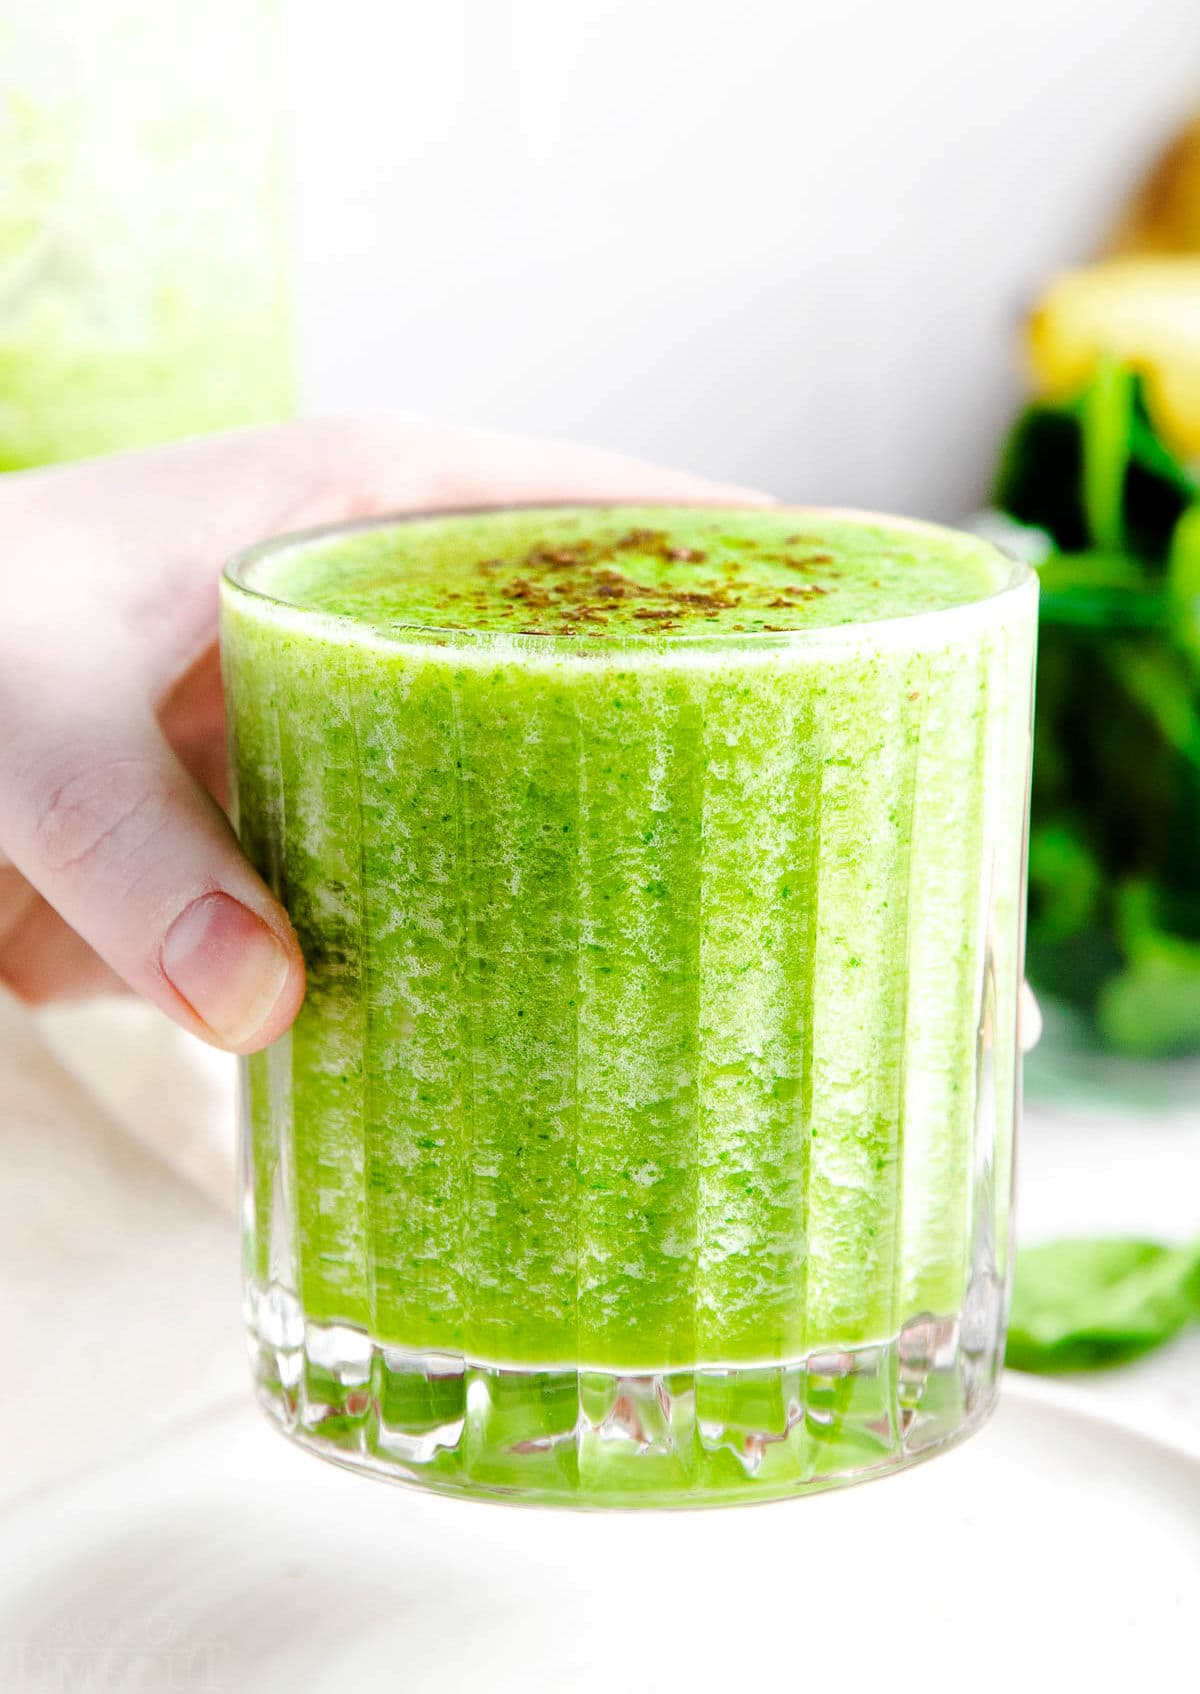 hand holding green smoothie in ridged glass with greens in the background.